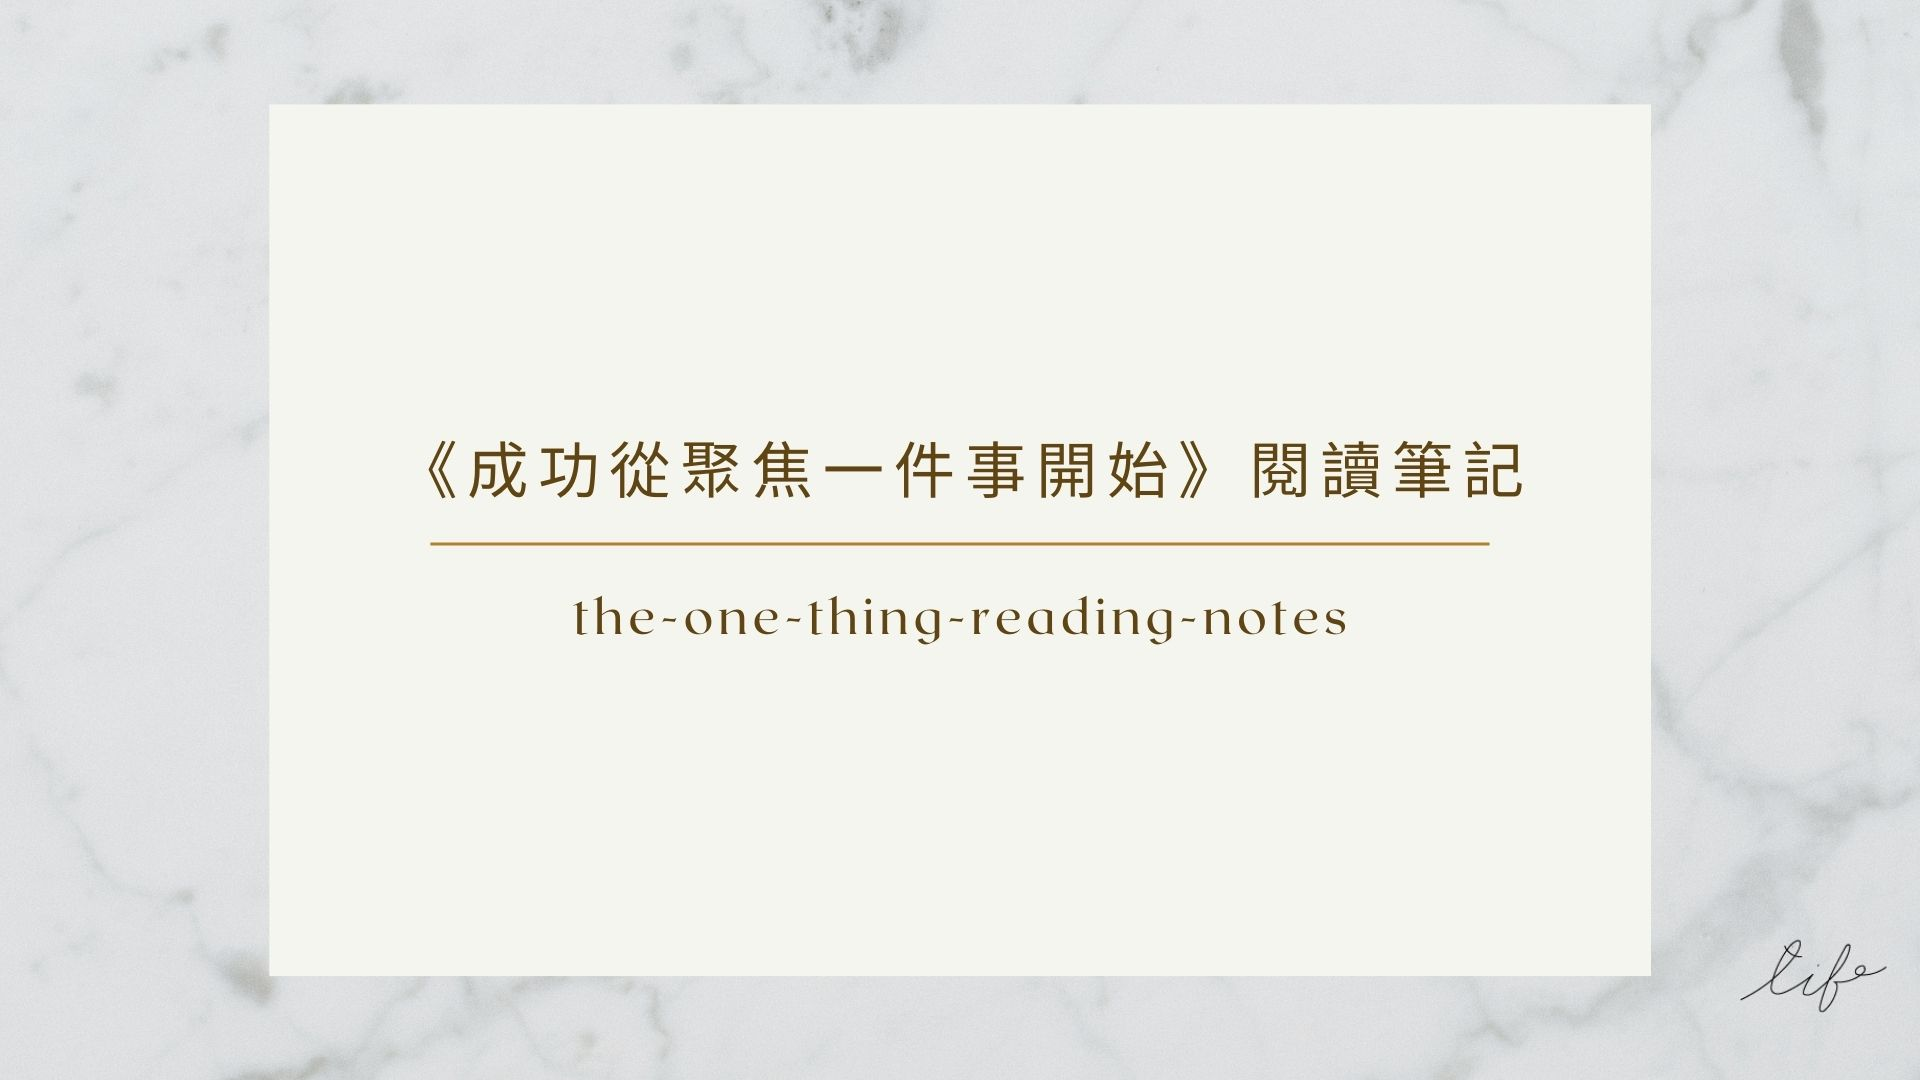 the-one-thing-reading-notes